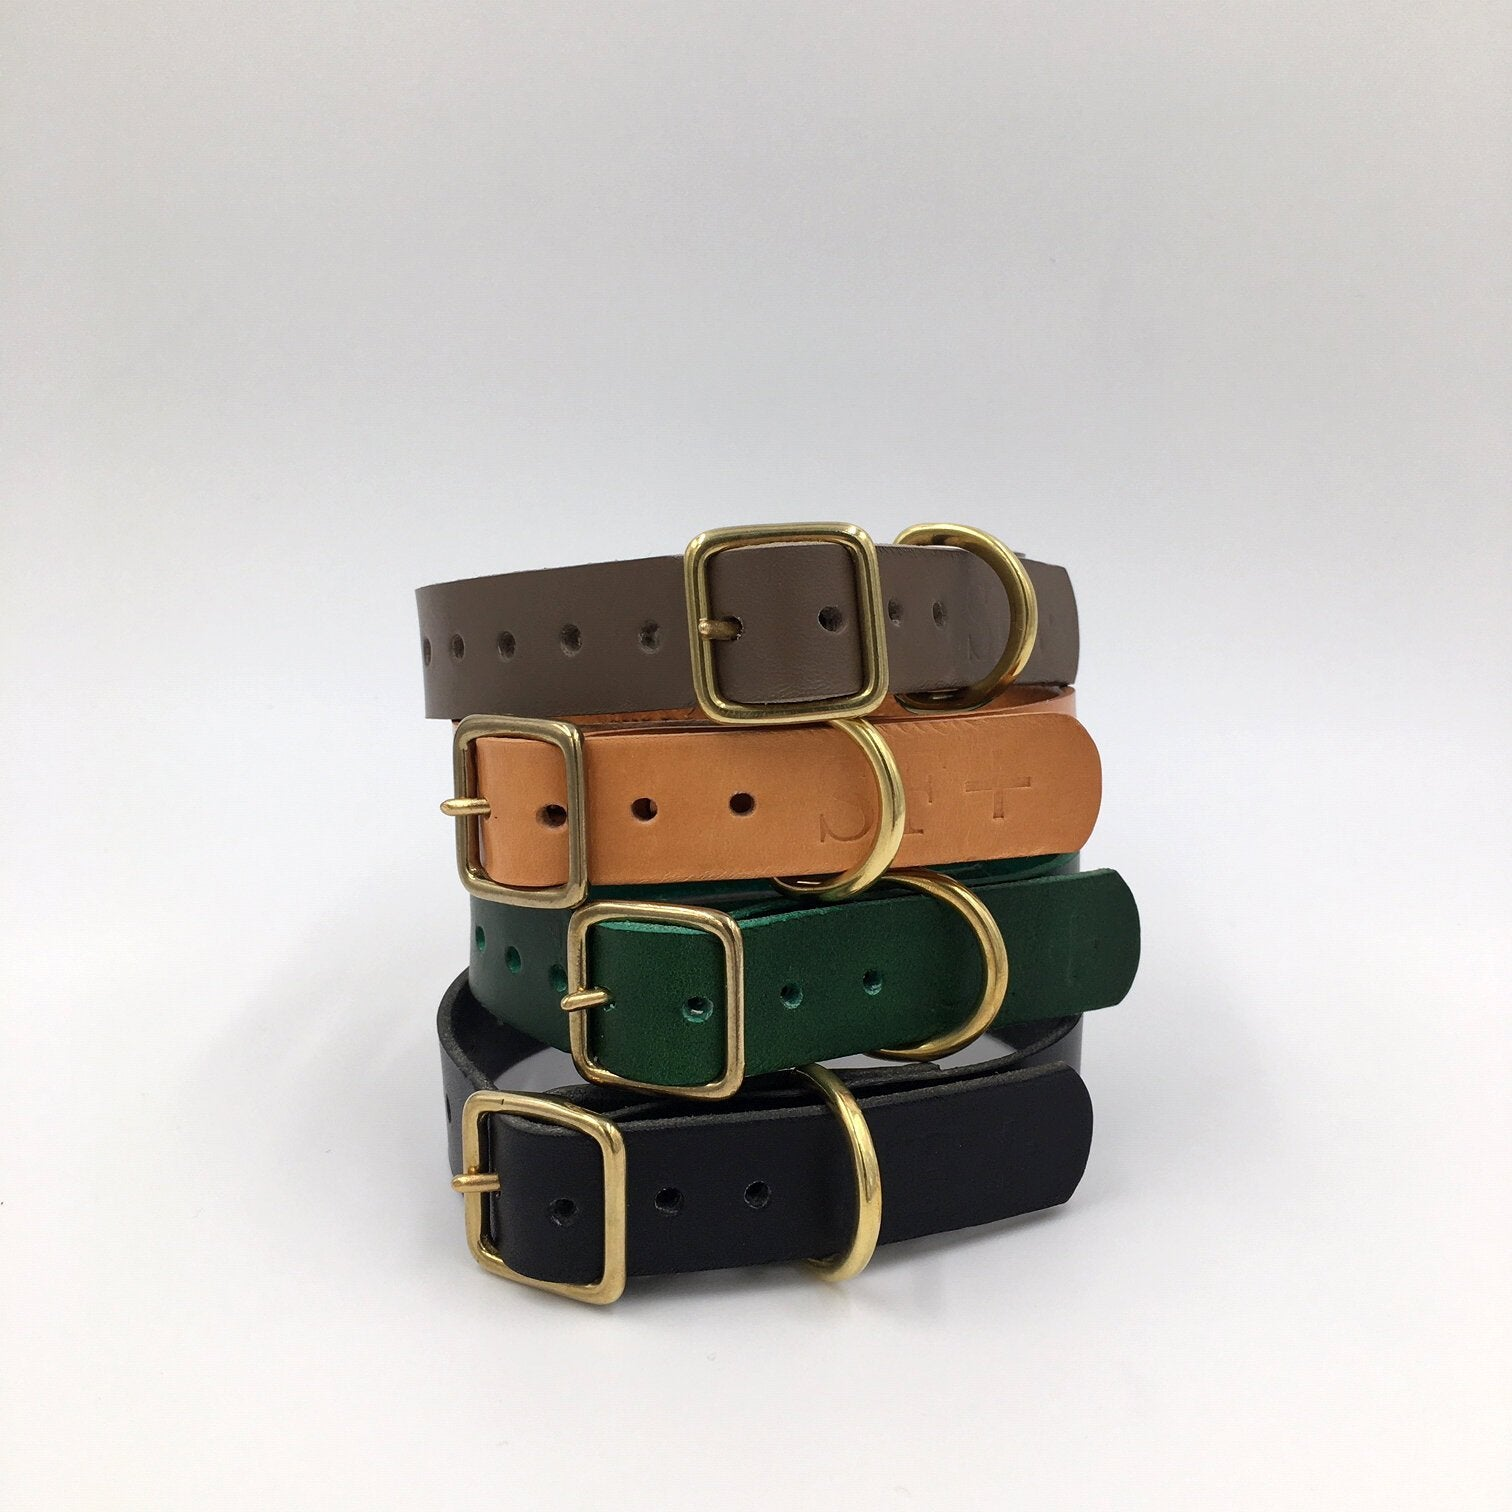 Artisan Small Breed/Puppy Collar Collection - Pampered Paws.shop